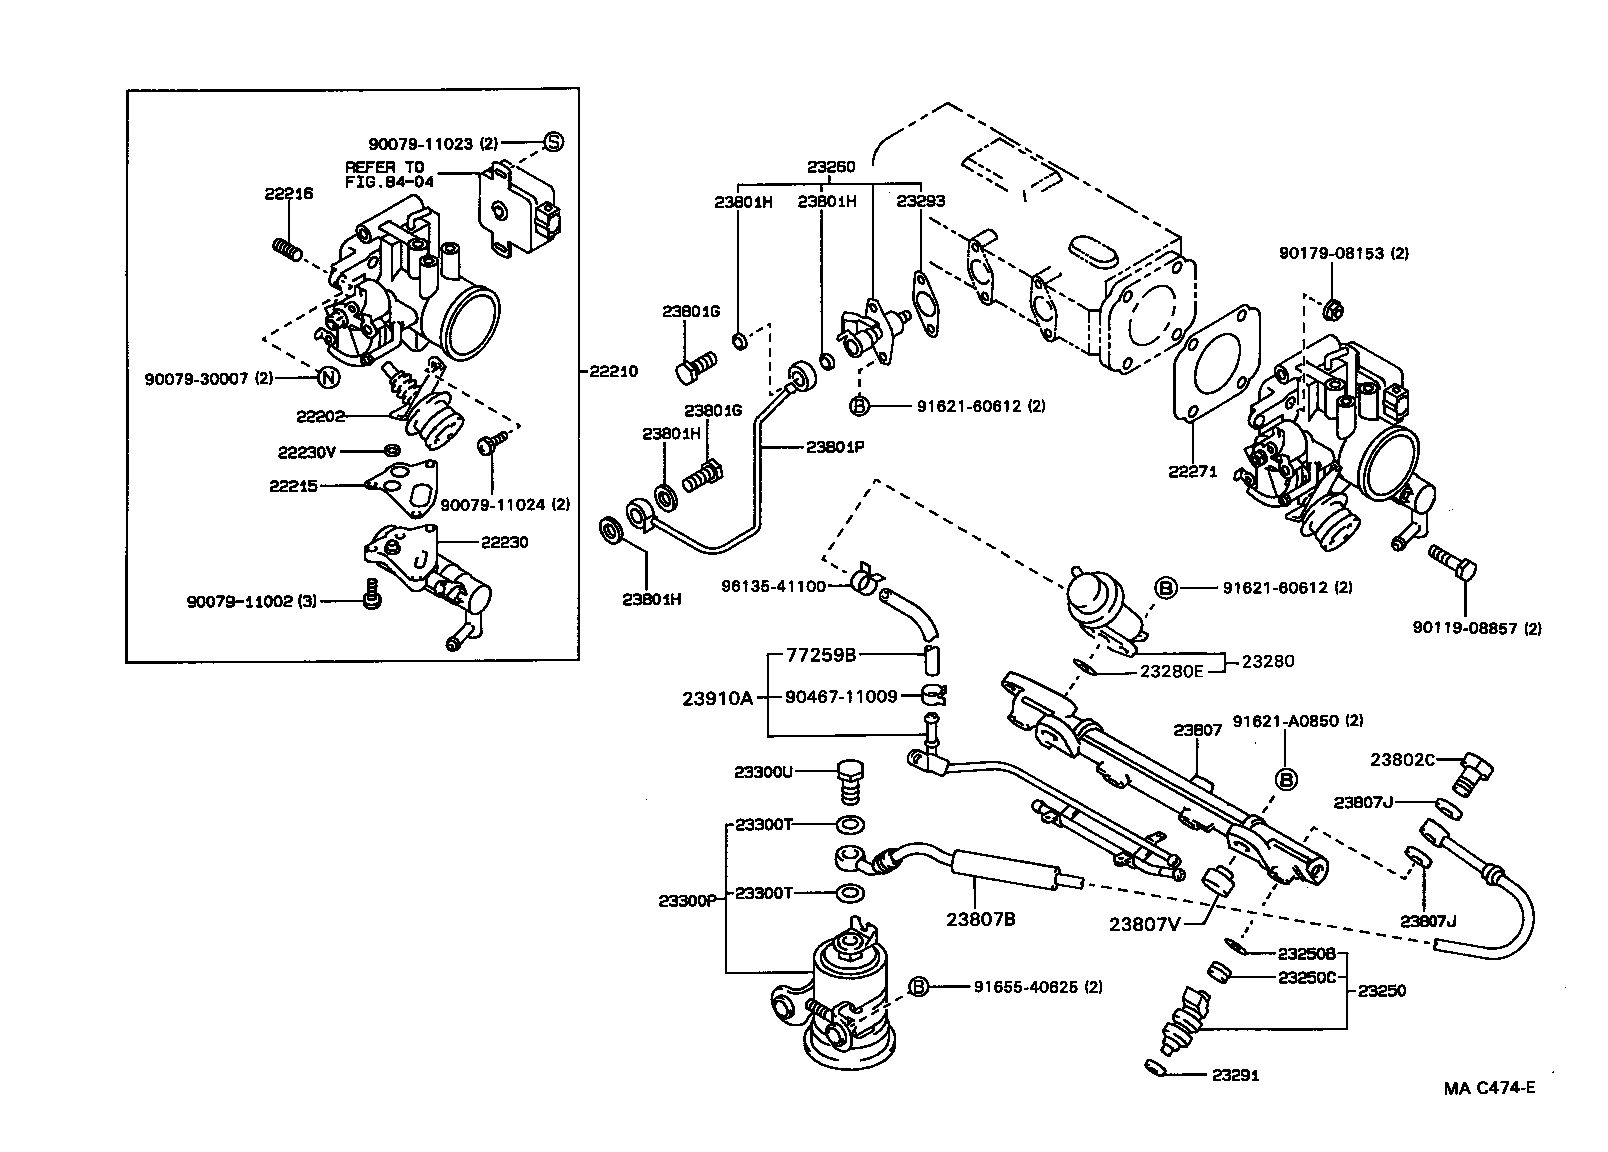 pictures of a 1991 toyota corolla efi engine diagram toyota corolla wagonae95l-cwmdkw - tool-engine-fuel - fuel ...